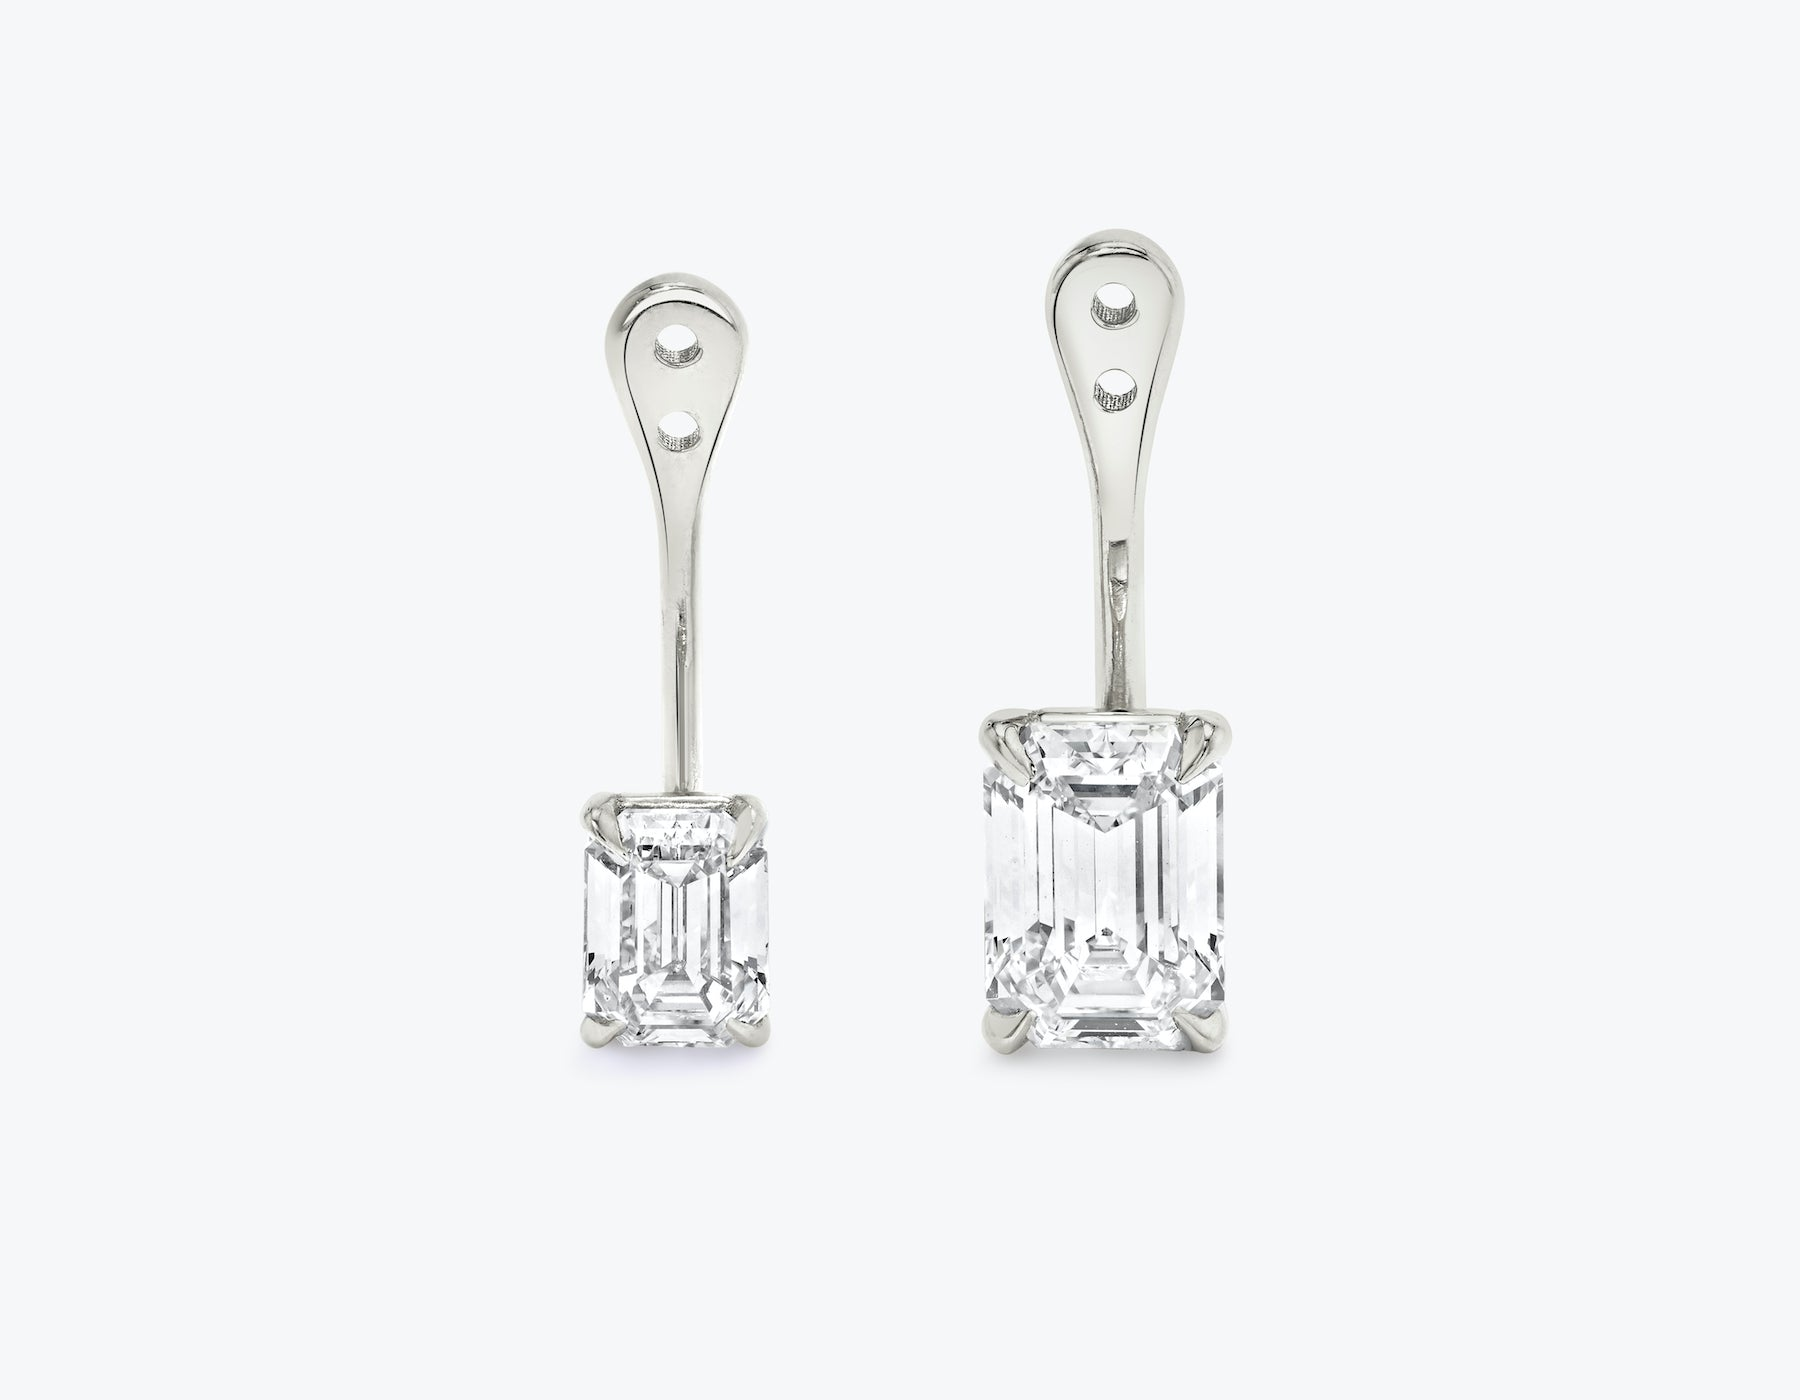 Vrai solitaire emerald diamond drop ear jackets made in 14k solid gold with sustainably created diamonds, 14K White Gold